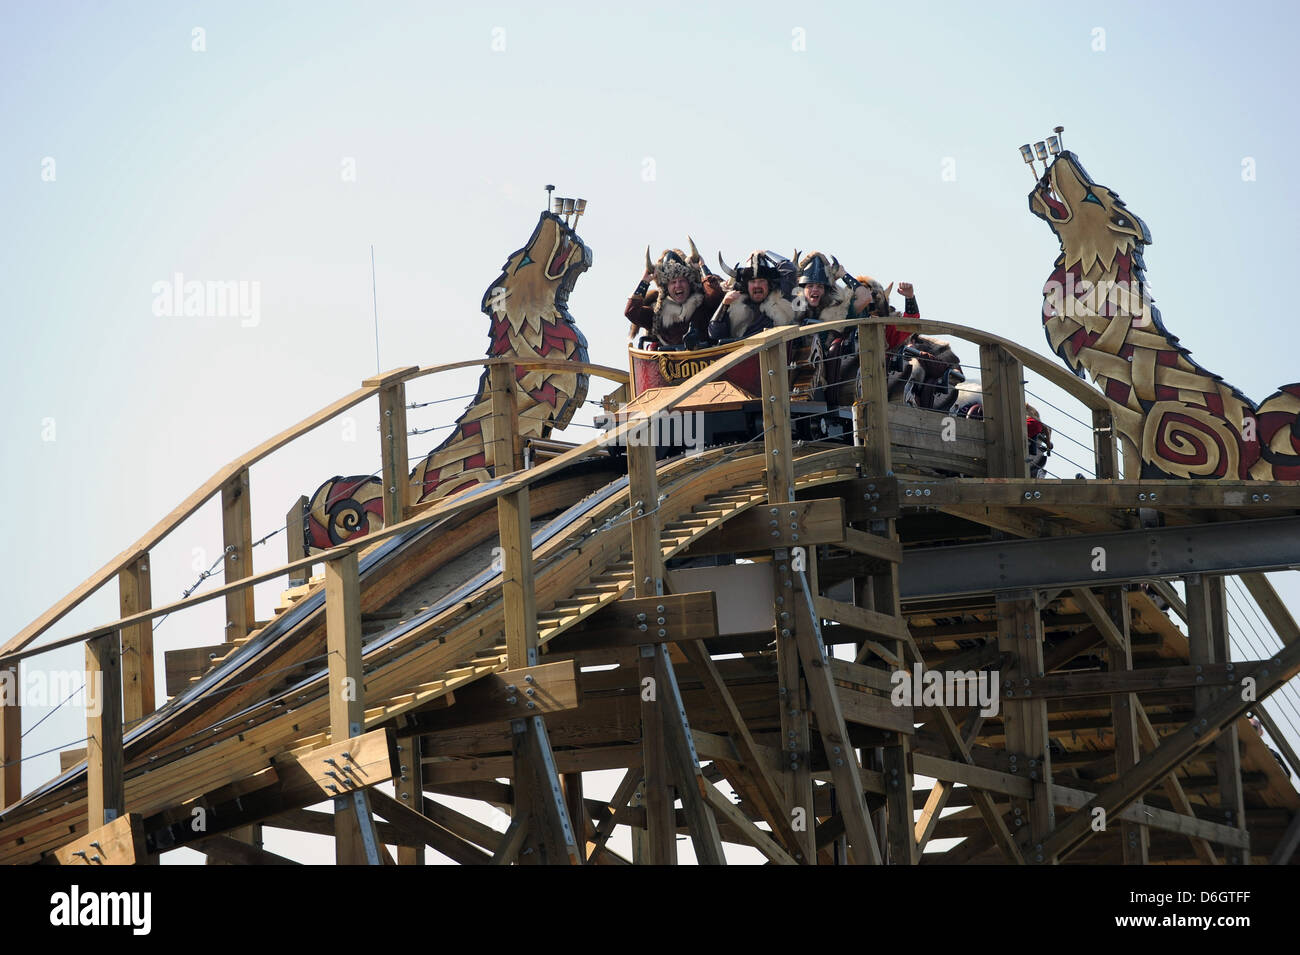 Rust, Germany, inauguration of the new wooden roller coaster Wodan, ÄìTimburcoaster at Europa-Park Rust - Stock Image